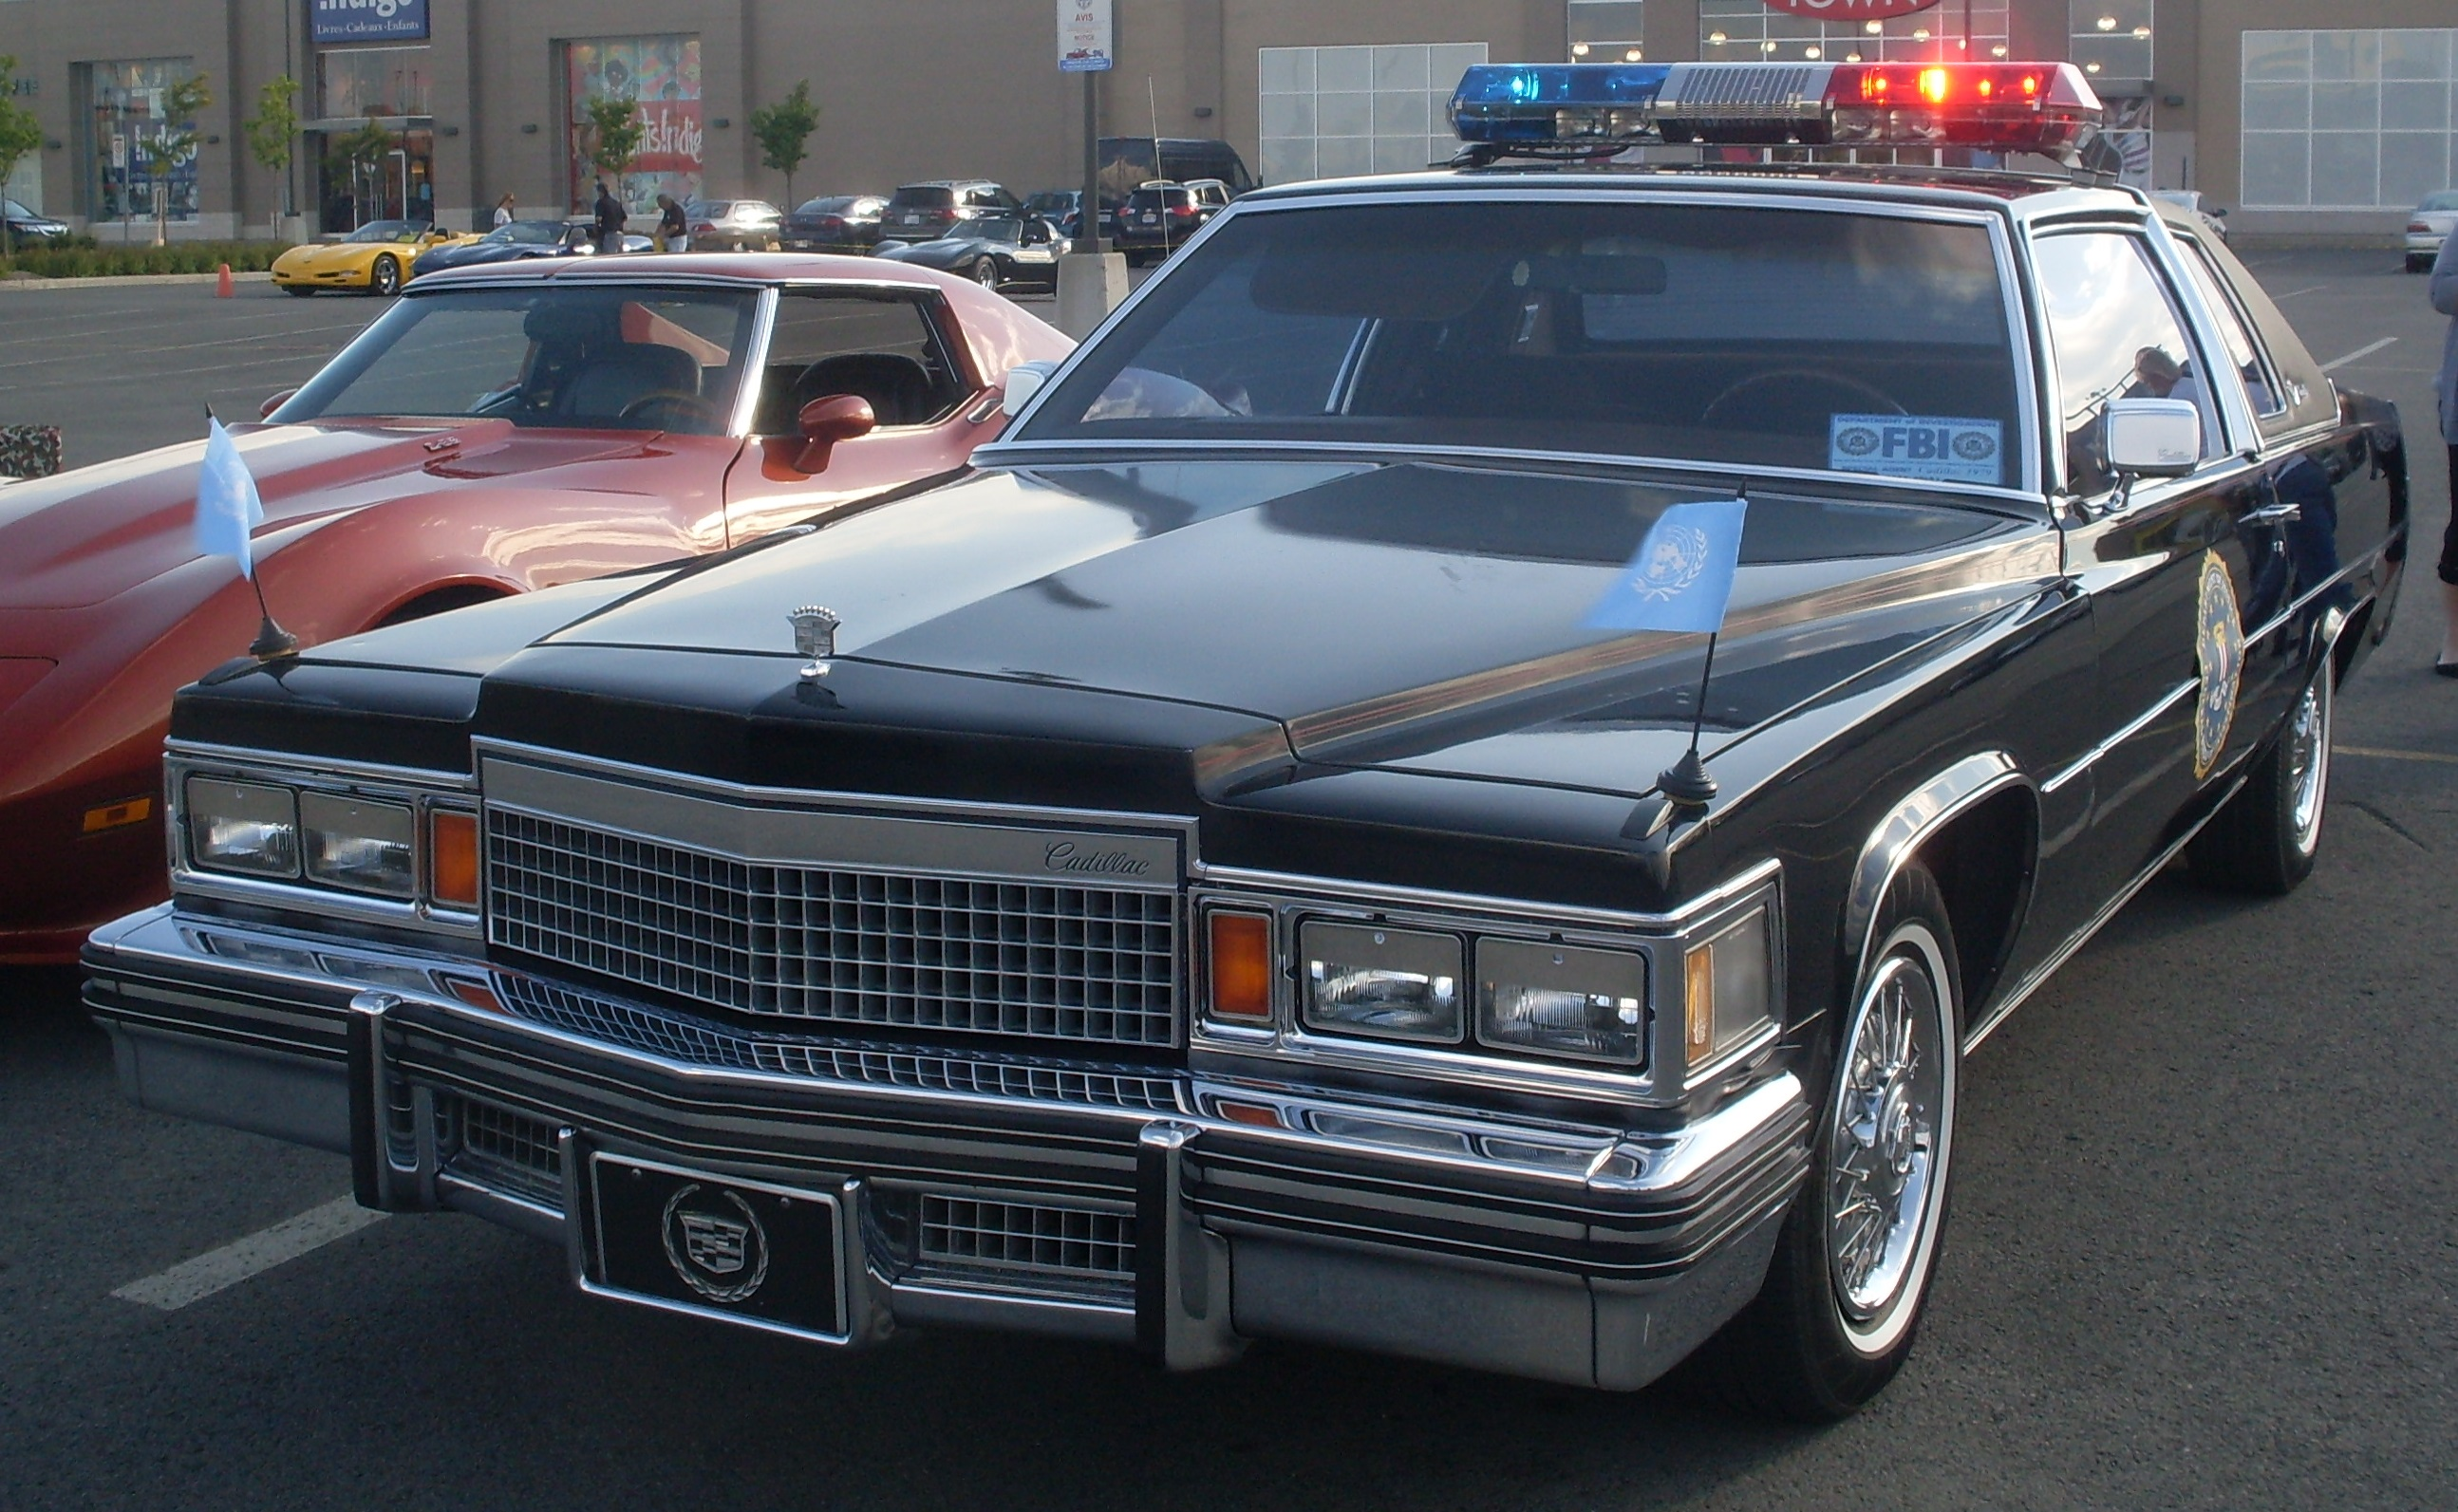 File79 Cadillac Police Coupe Les Chauds Vendredis 13JPG